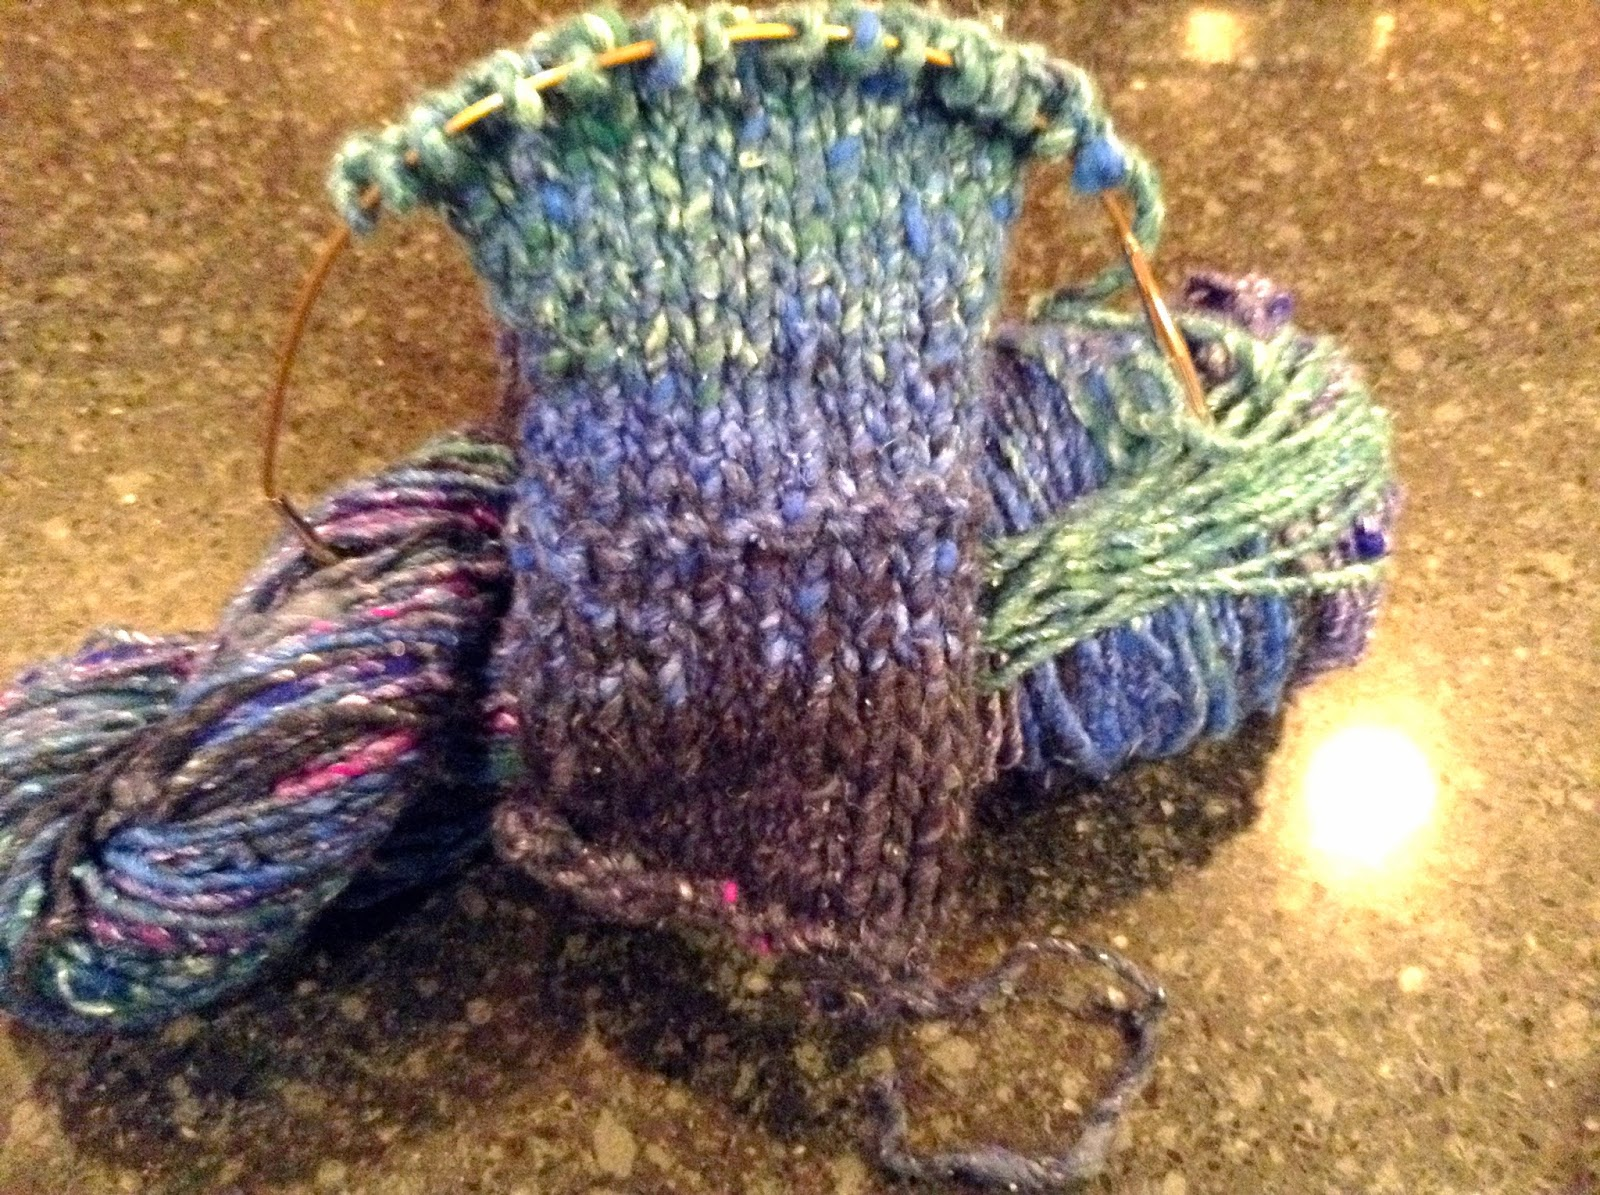 Knitting Stitches Bulky Yarn : Stitch and Chat: The Joy of Knitting With Bulky Yarn.